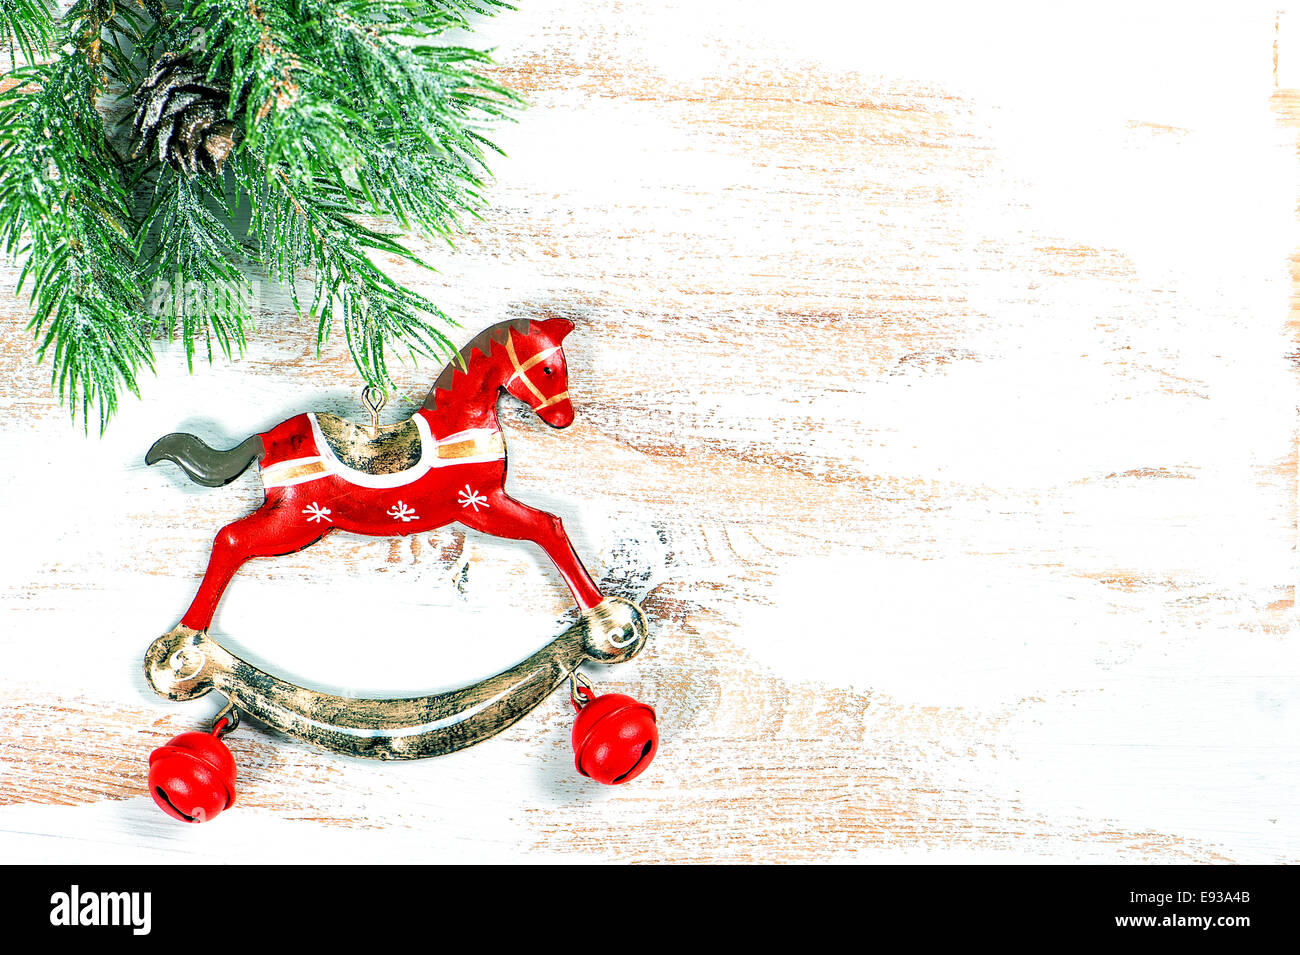 Christmas Rocking Horse High Resolution Stock Photography And Images Alamy